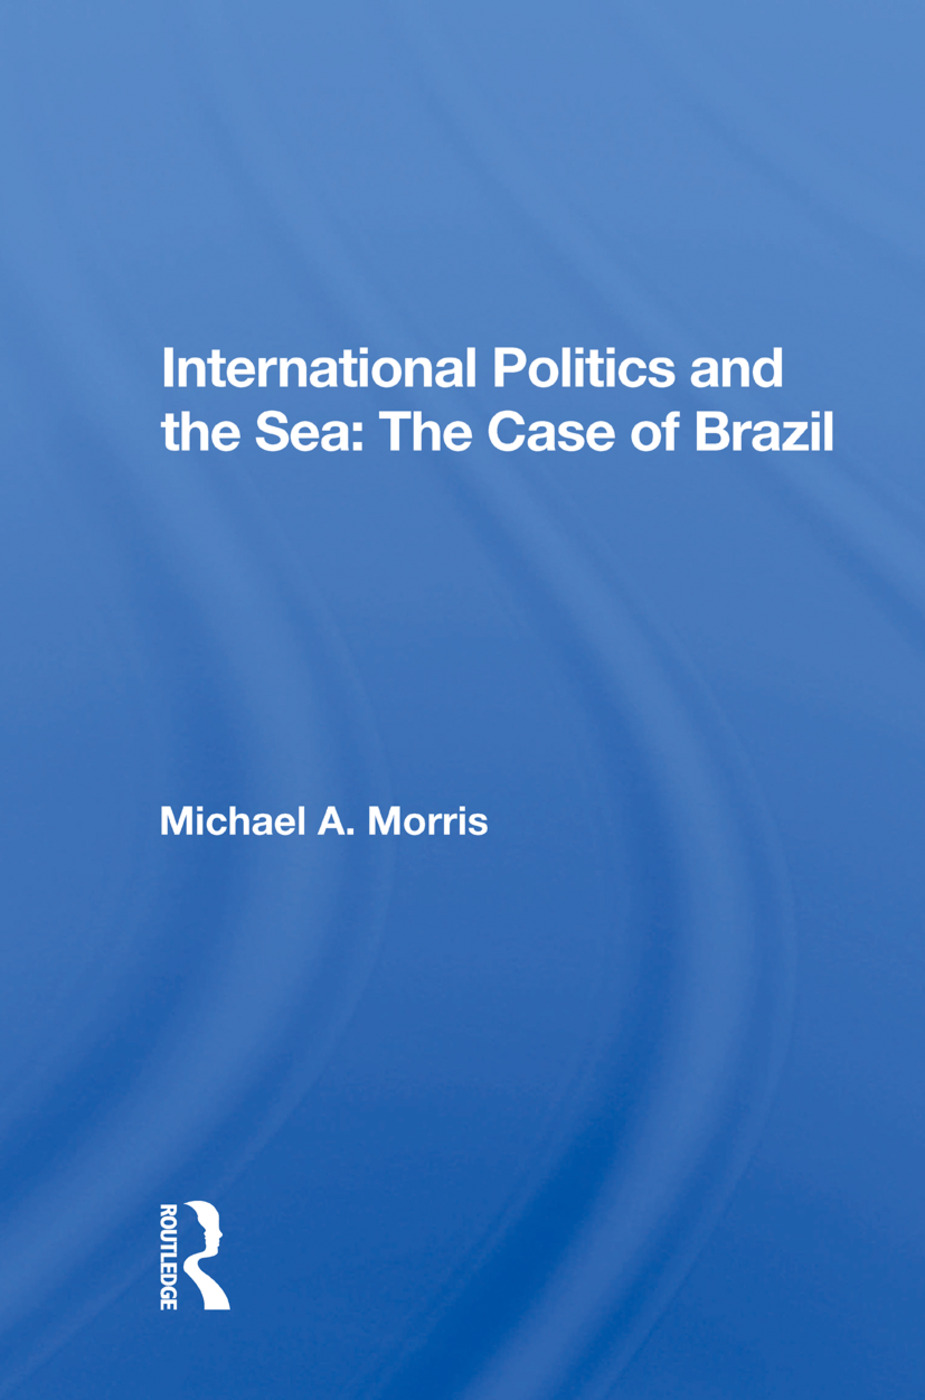 International Politics and the Sea: The Case of Brazil